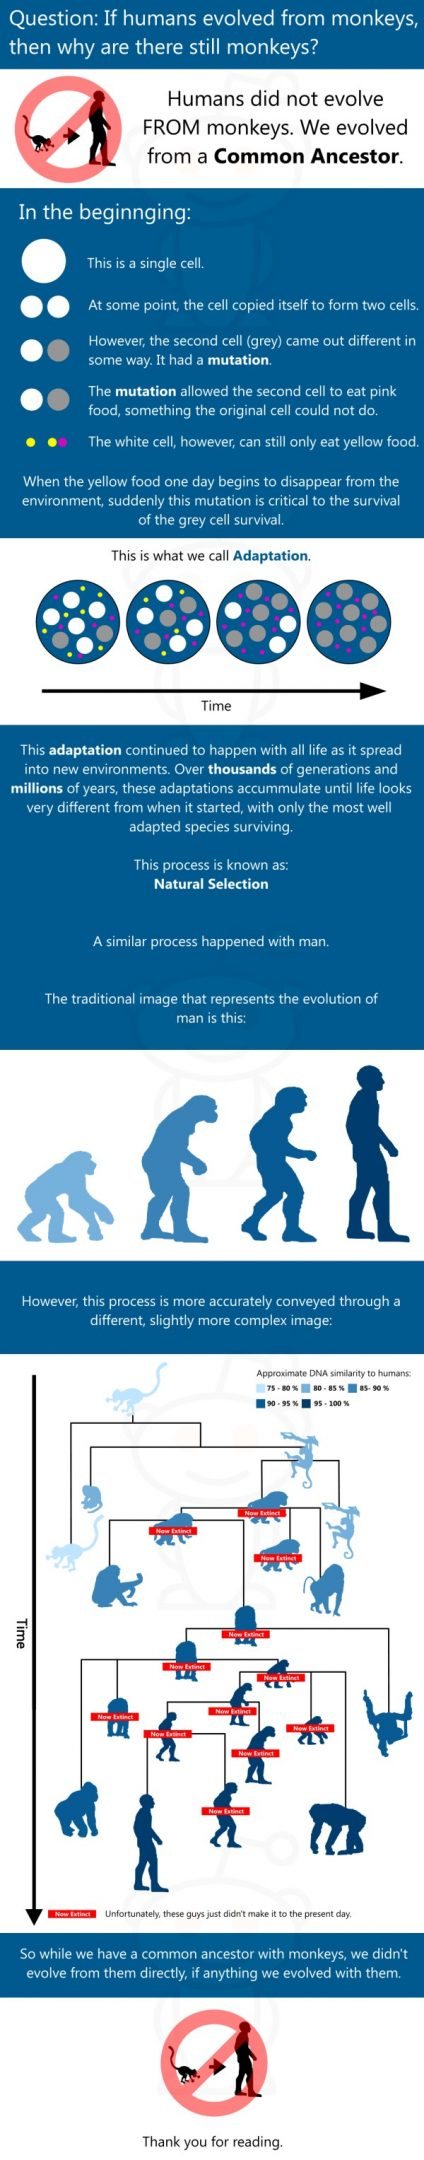 If humans evolved from monkeys, why are there still monkeys